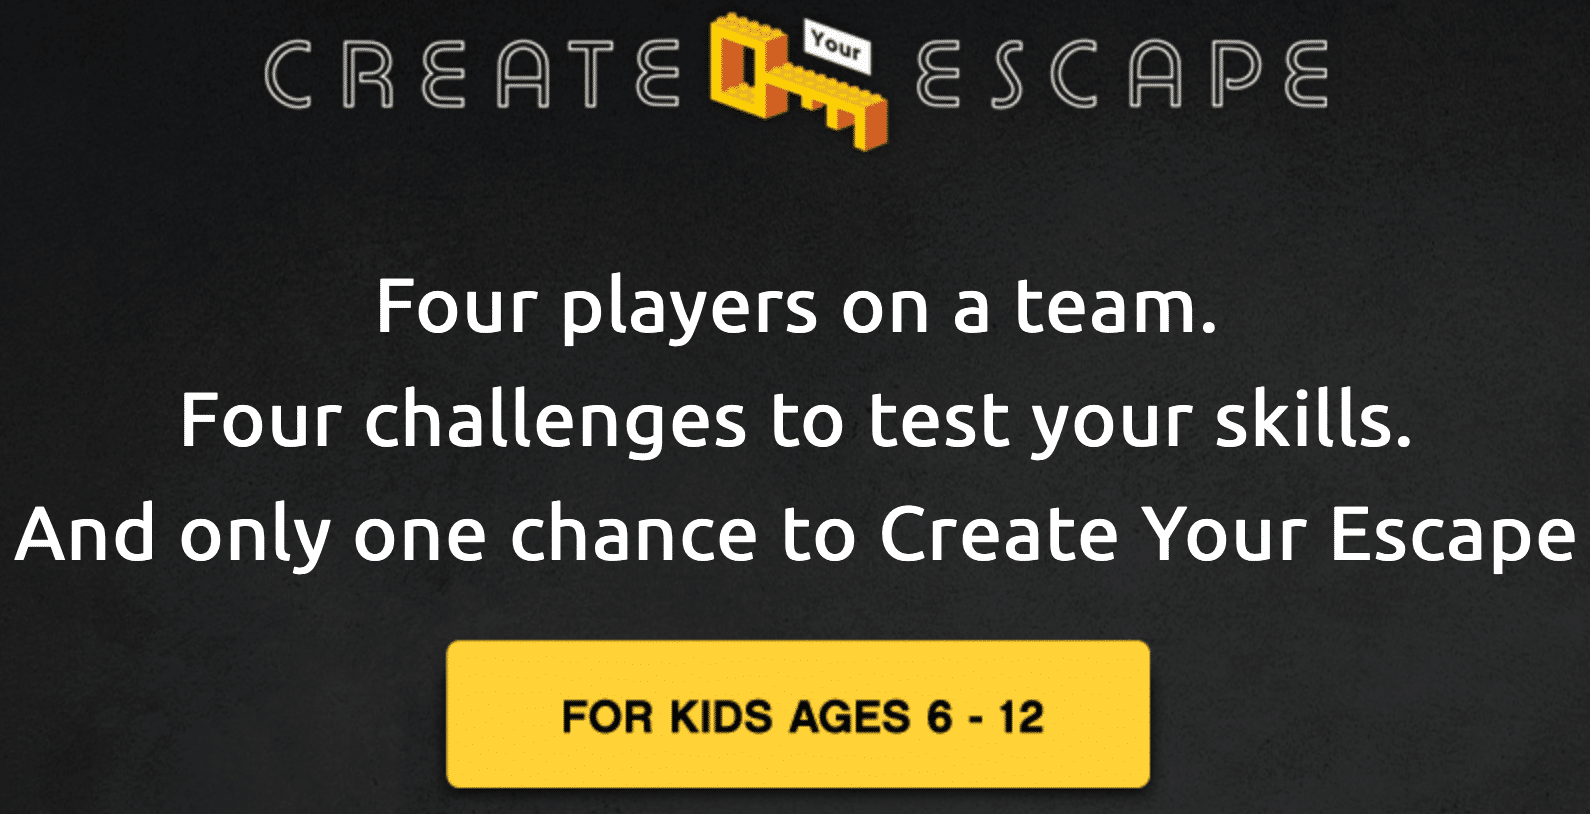 LEGO Create Your Escape